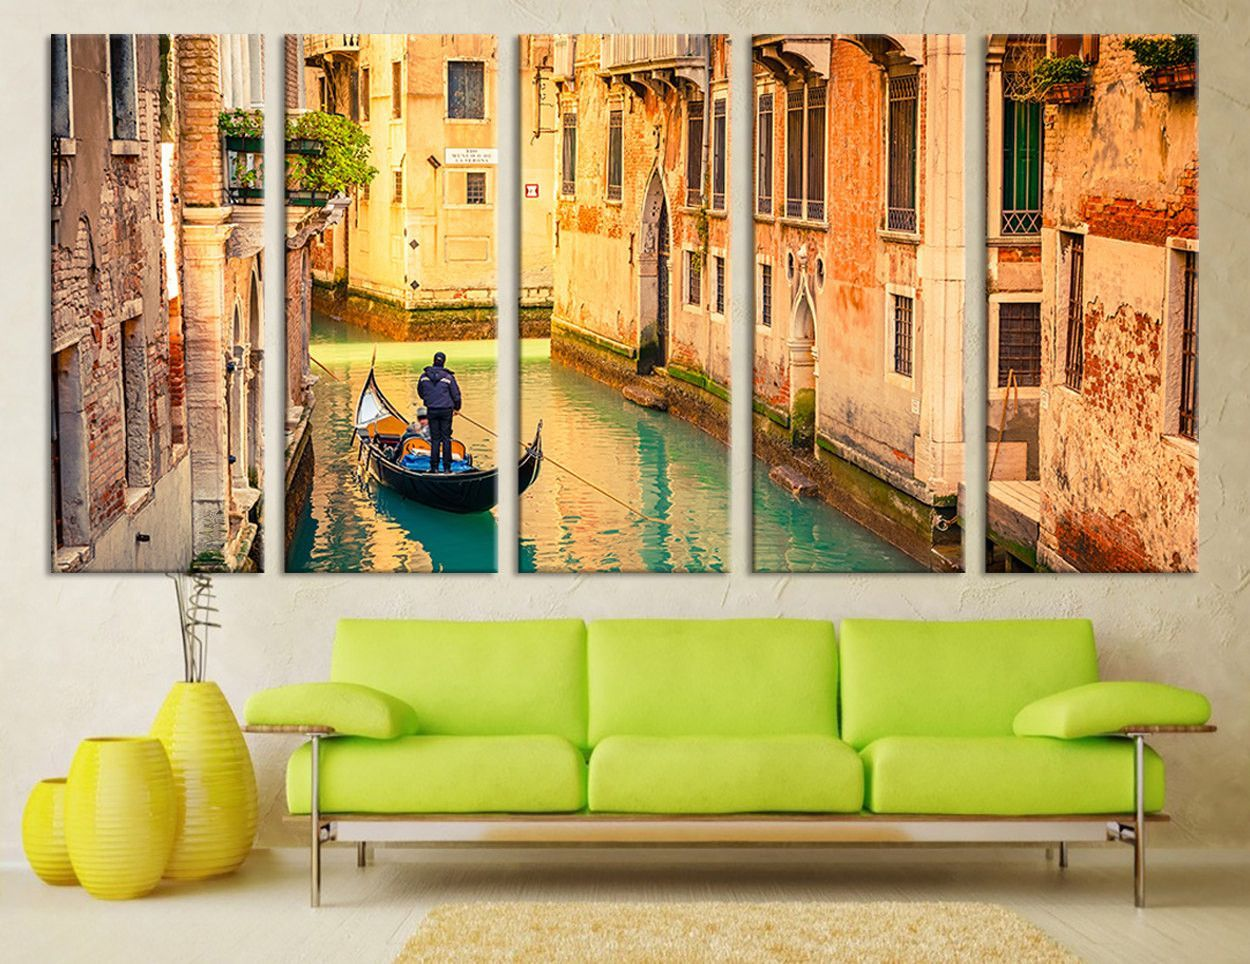 City Wall Art - Italy Venice Gondolas in Canal Wall Art Print ...